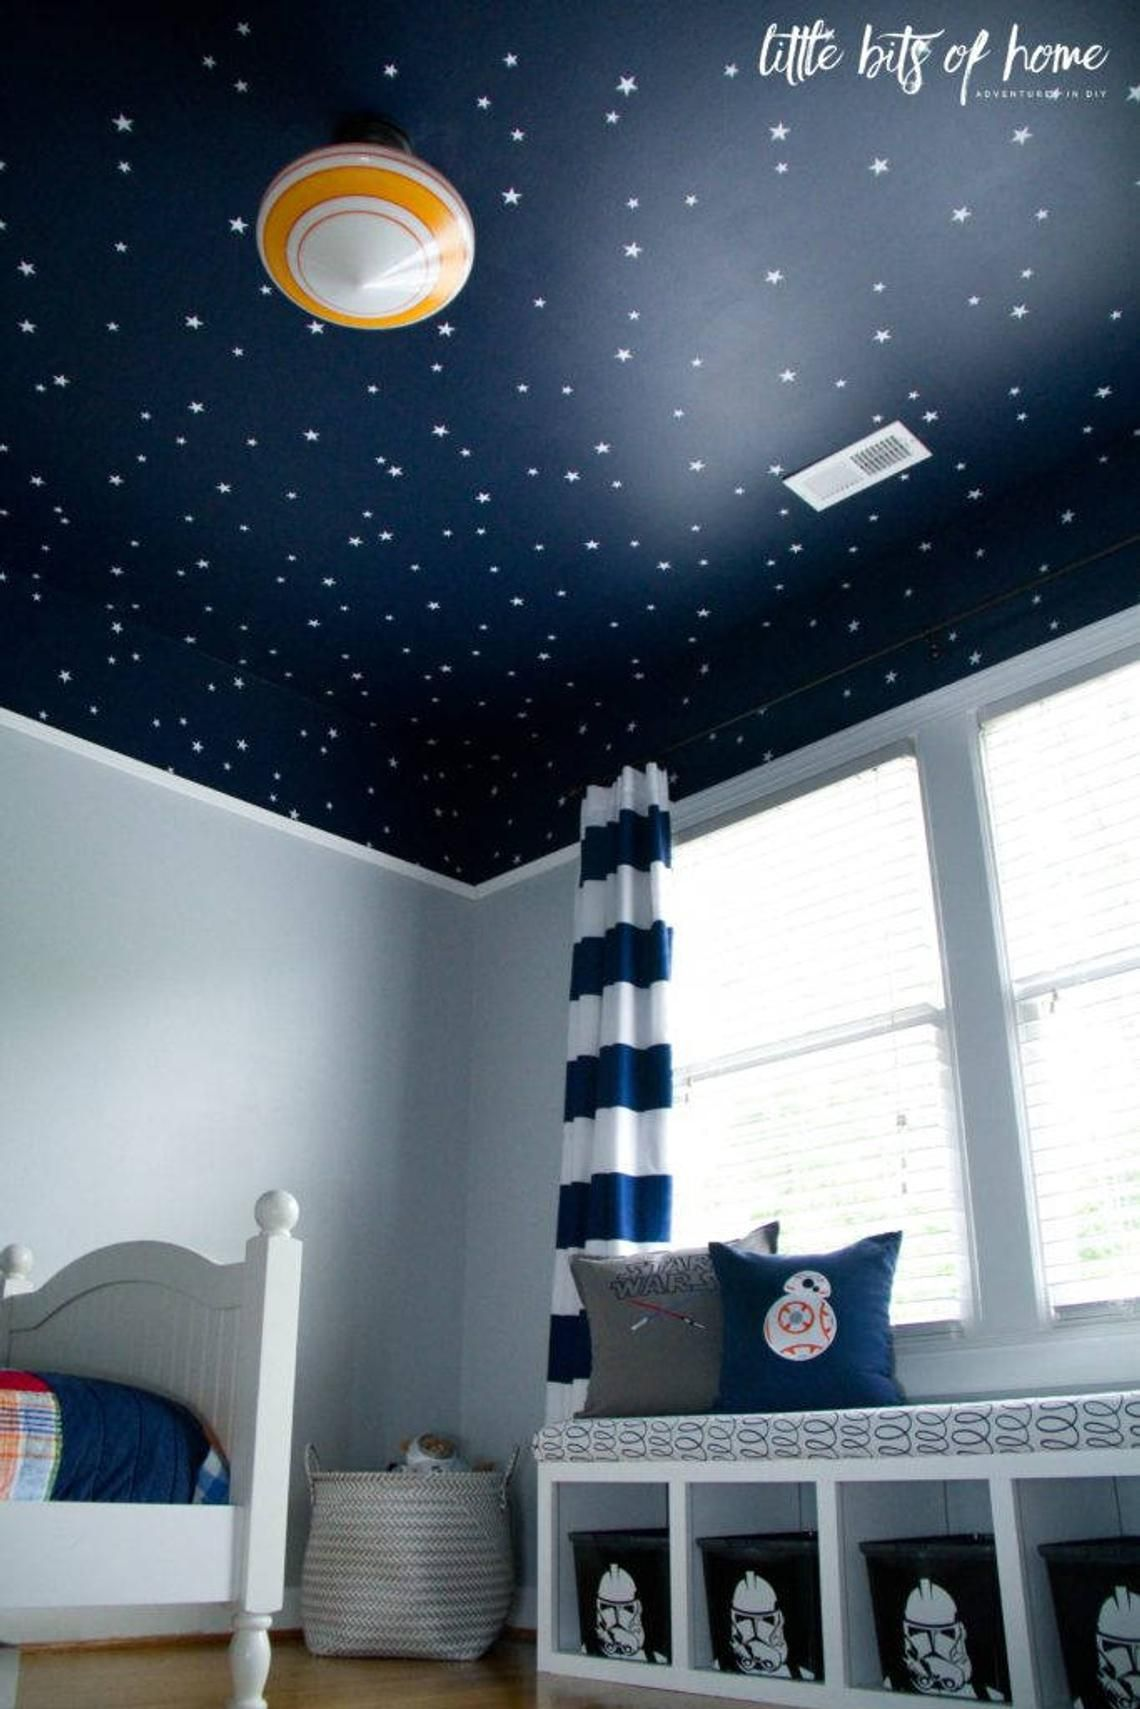 Star Wars Themed Wall Decals White Star Decals Little Bits Etsy Star Wars Kids Bedroom Star Wars Theme Room Star Wars Bedroom